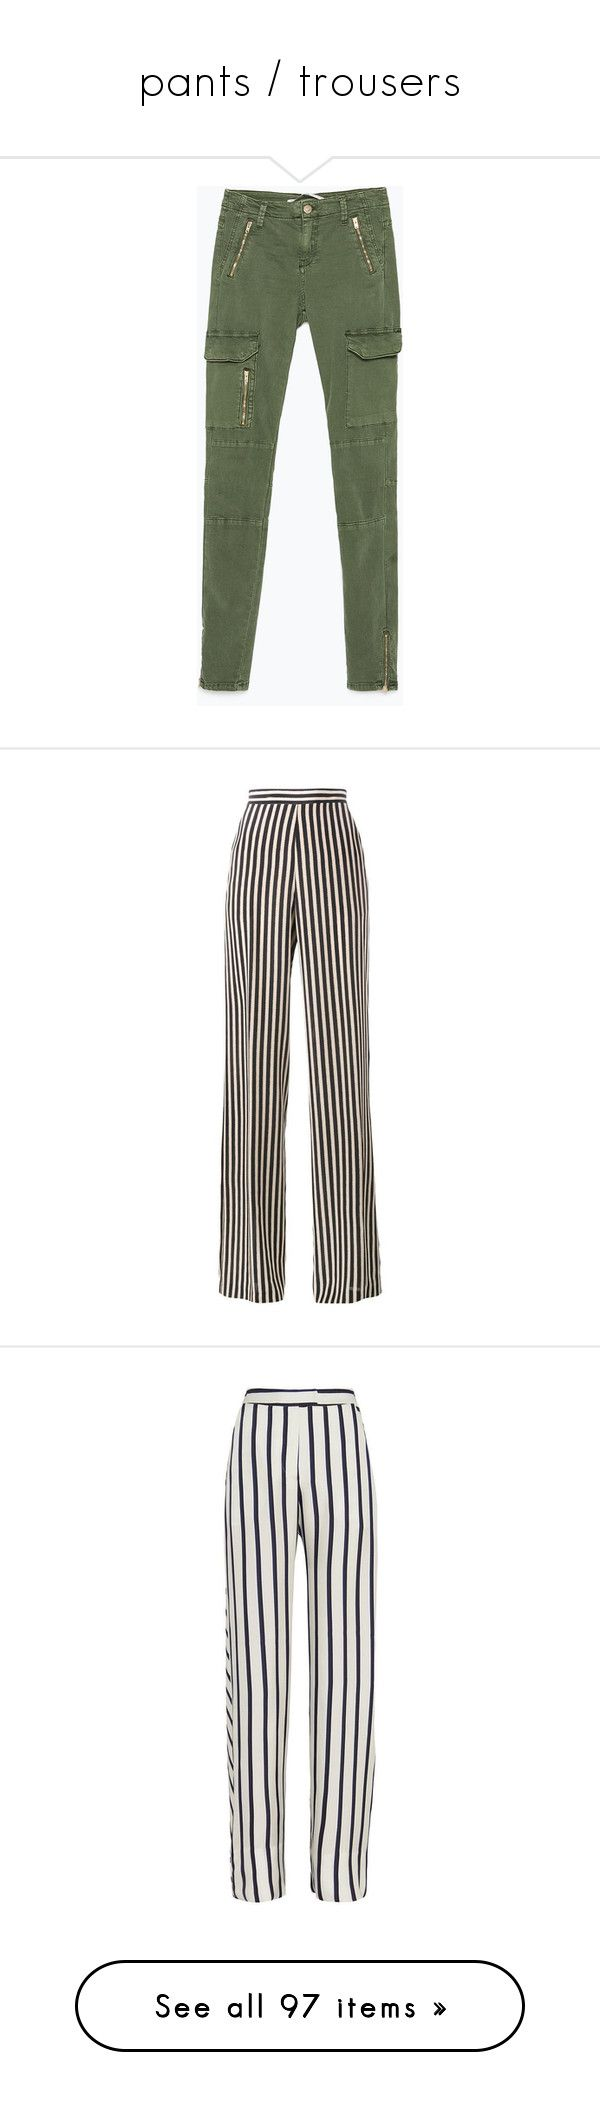 """""""pants / trousers"""" by whitesandprincess ❤ liked on Polyvore featuring pants, bottoms, jeans, pantalon, pants and shorts, military green, green pants, army green pants, olive cargo pants and skinny cargo pants"""